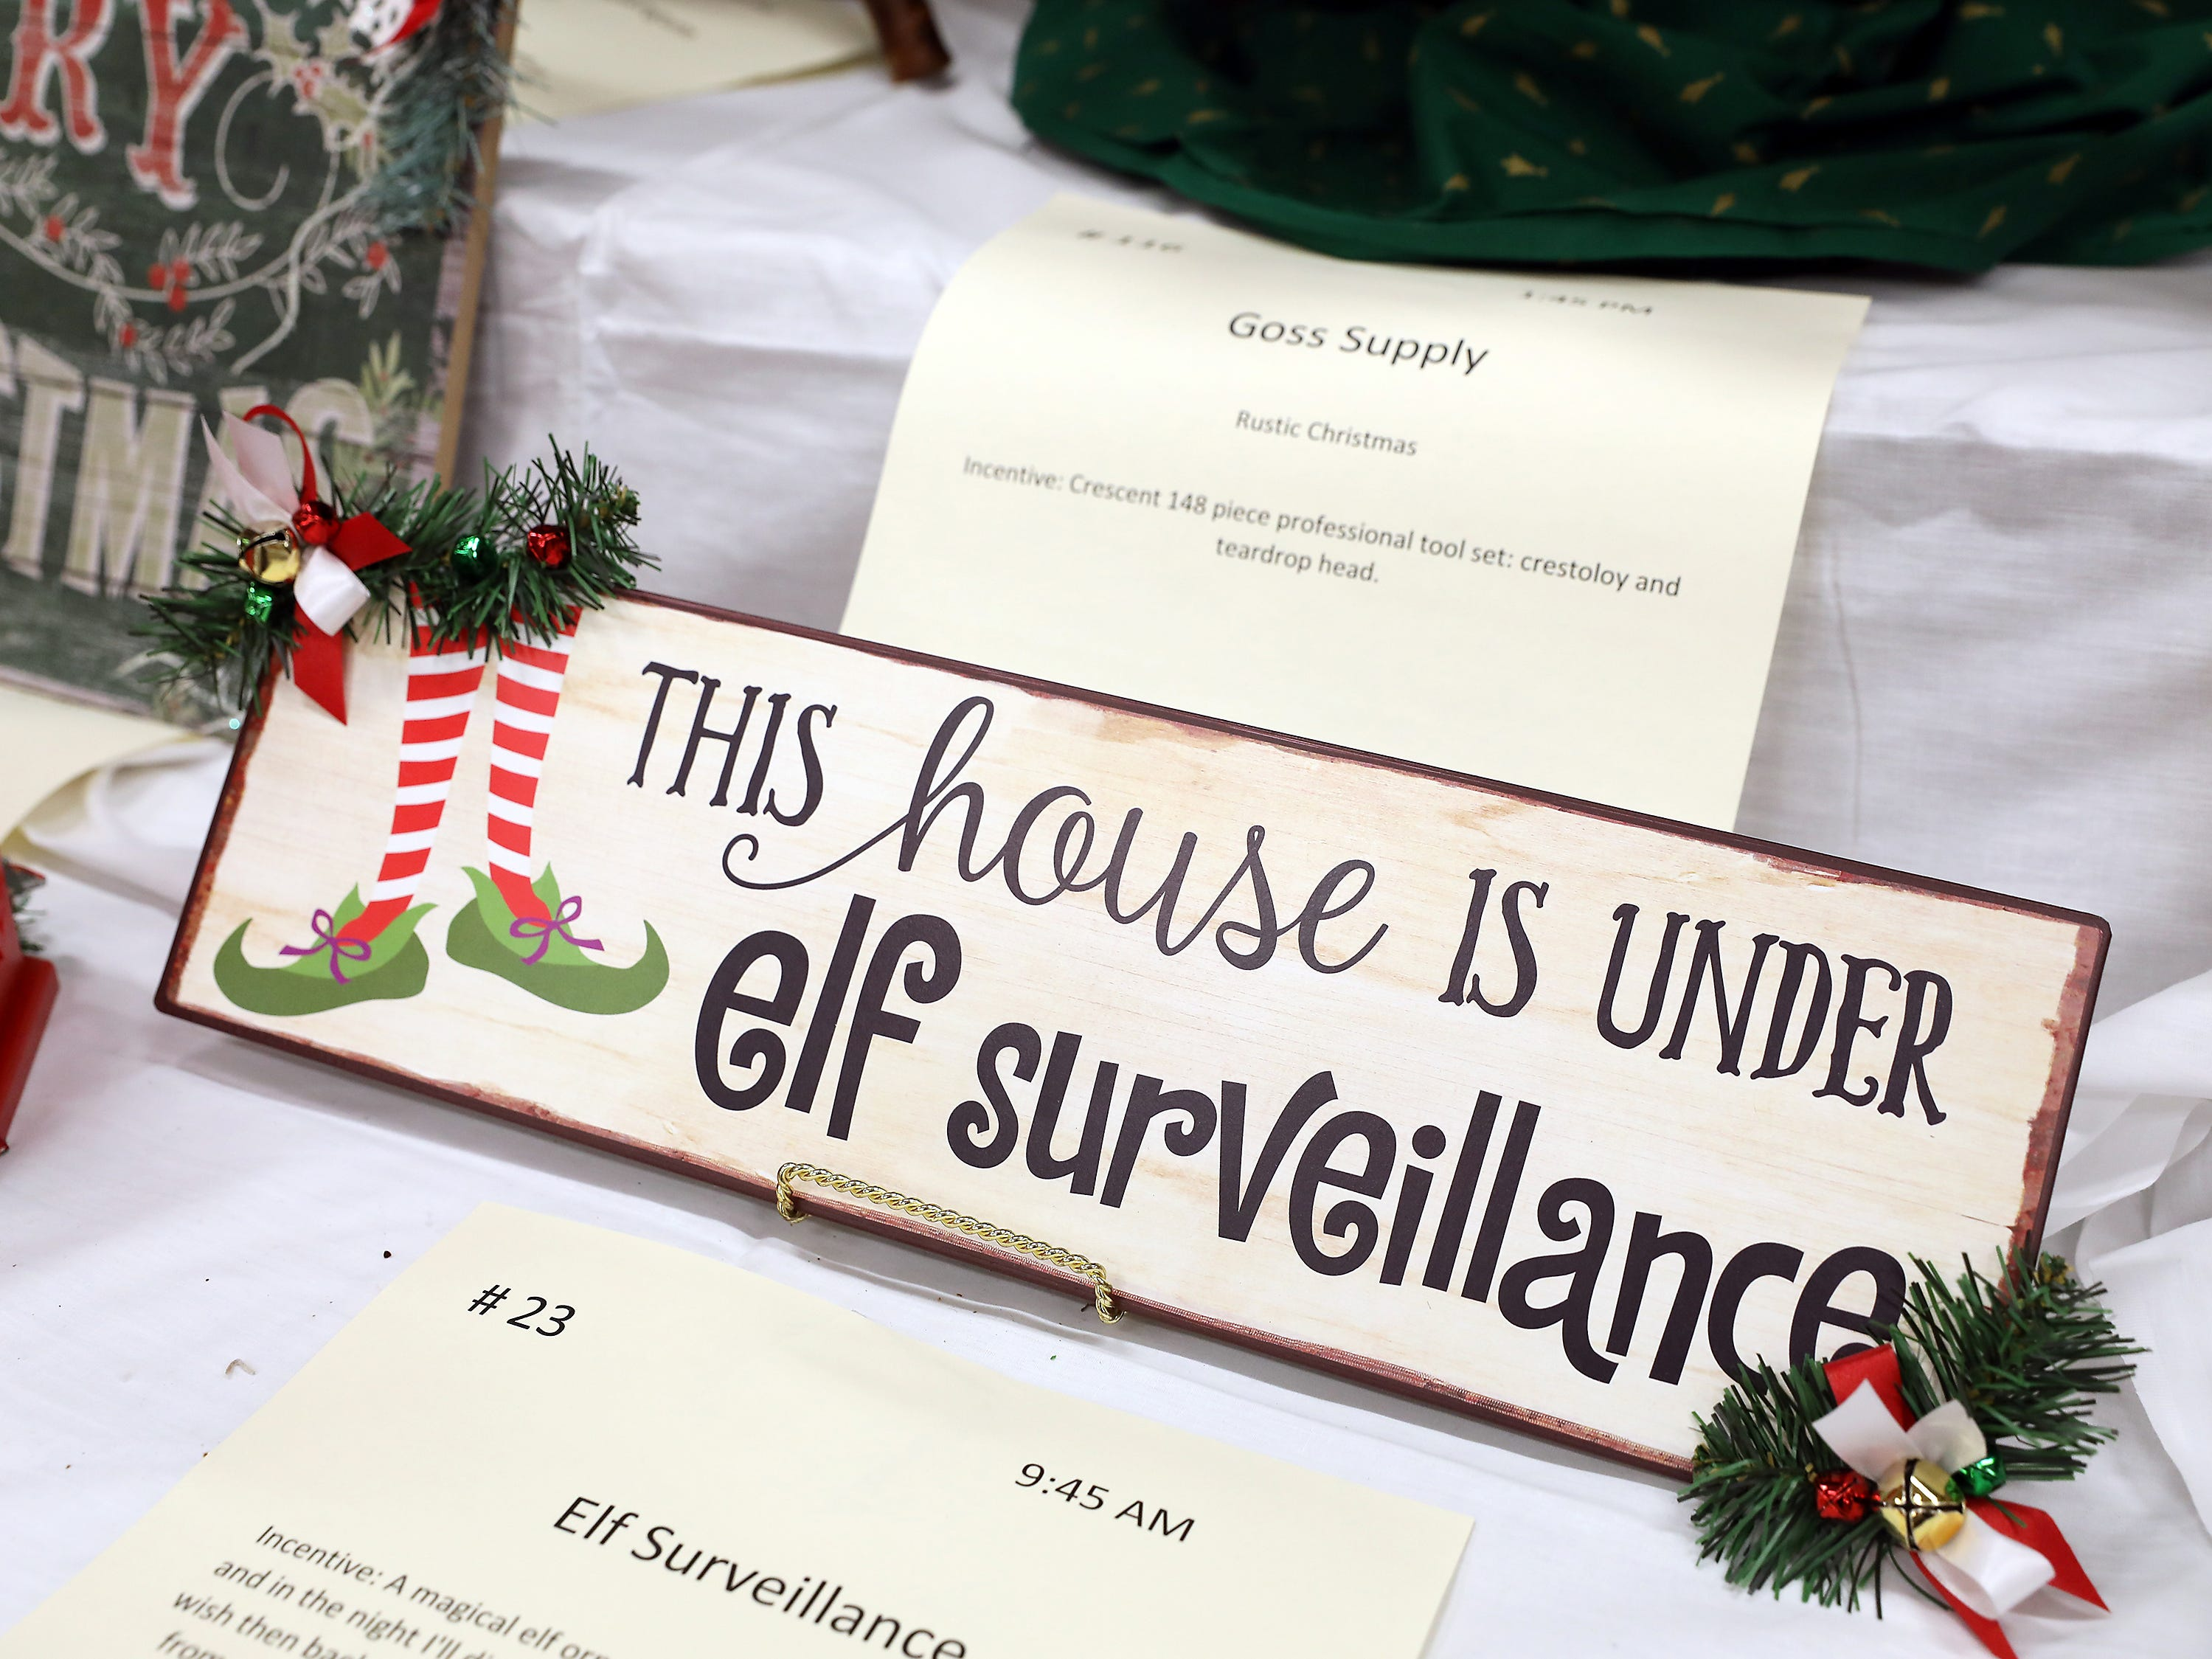 "23	9:45 AM	Committee Entry	Other	Elf Surveillance	""This house is under elf surveillance"" 20""x6"" metal sign adorned with green pine and jingle bells		A magical elf ornament - ""Whisper a wish into my ear and in the night I'll disappear.  I'll fly to see santa and tell him the wish then back to your home with a magical swish.  If I'm not back from where I have been find me and a wish you'll win.  How to Catch an Elf children's book from the New York Times bestselling team Adam Wallace and Andy Elkerton"